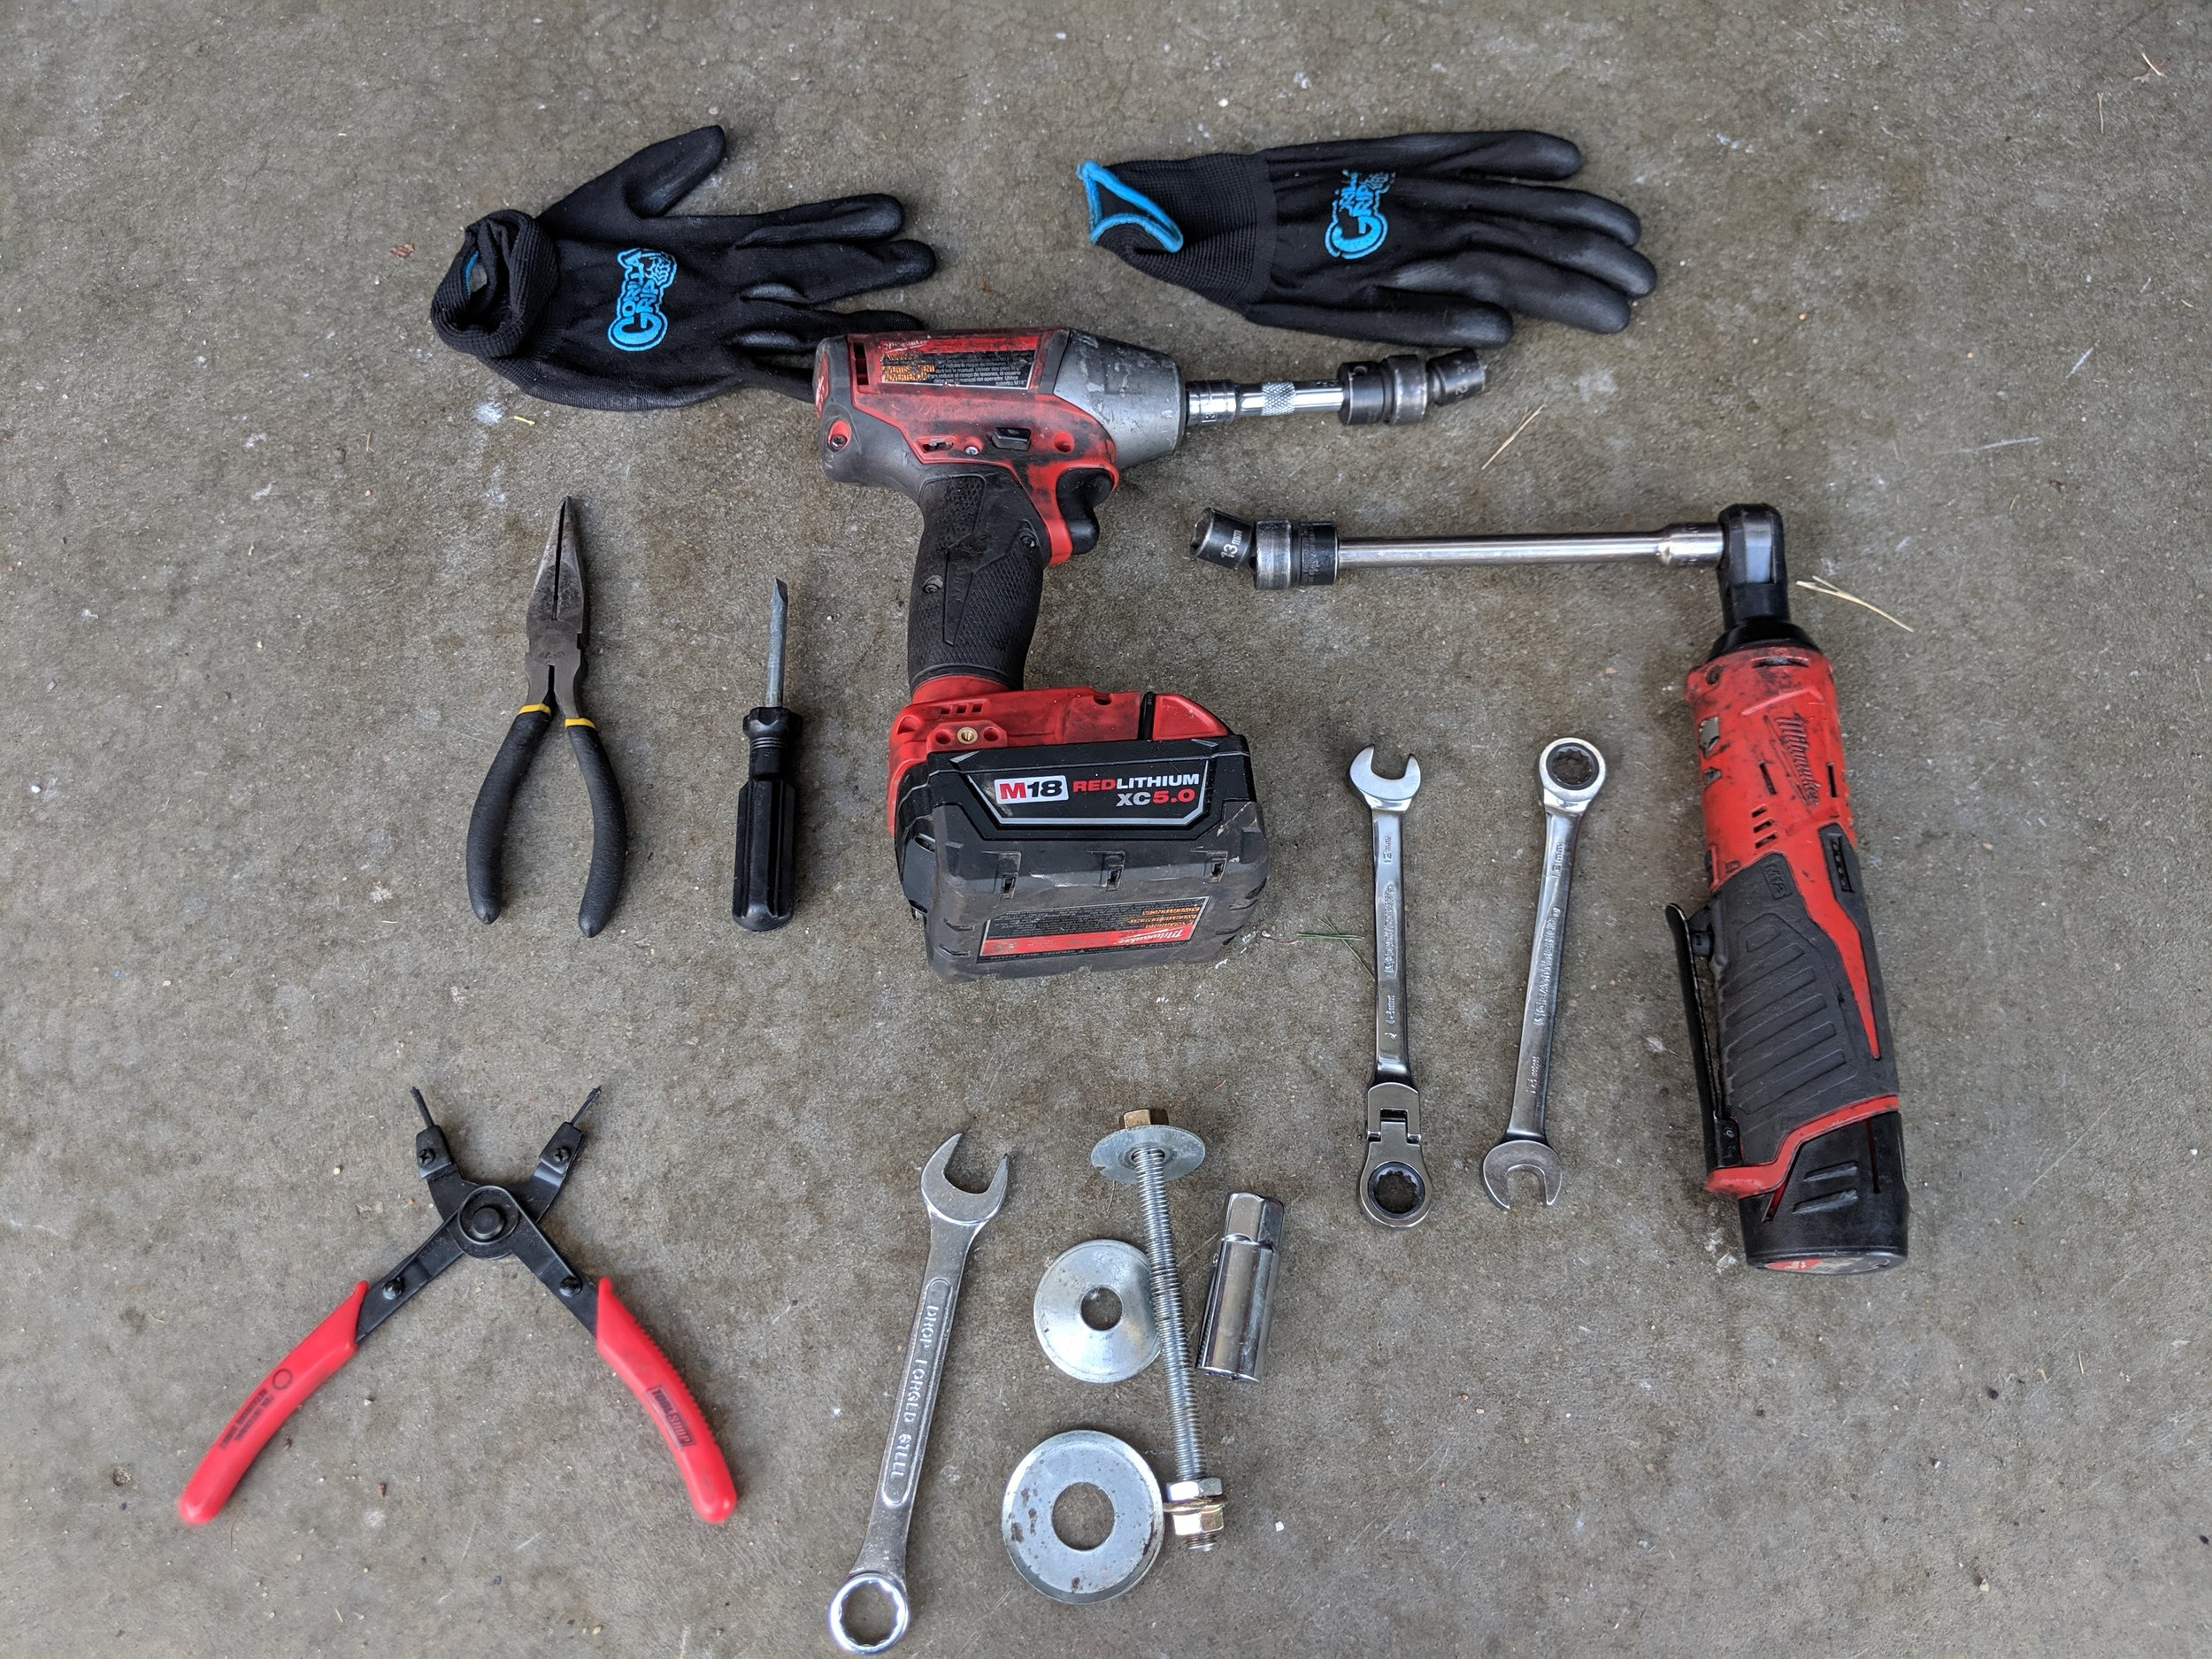 Here are the tools you will need!   12mm Gearwrench ratcheting wrench swivel head   Gearwrench metric ratcheting swivel head wrench set    Non marring body panel tool set   Proto 4 piece Screwdriver set   Raven nitrile gloves 100ct   Gorilla grip large gloves   Danco Silicone Grease    Needle nose pliers